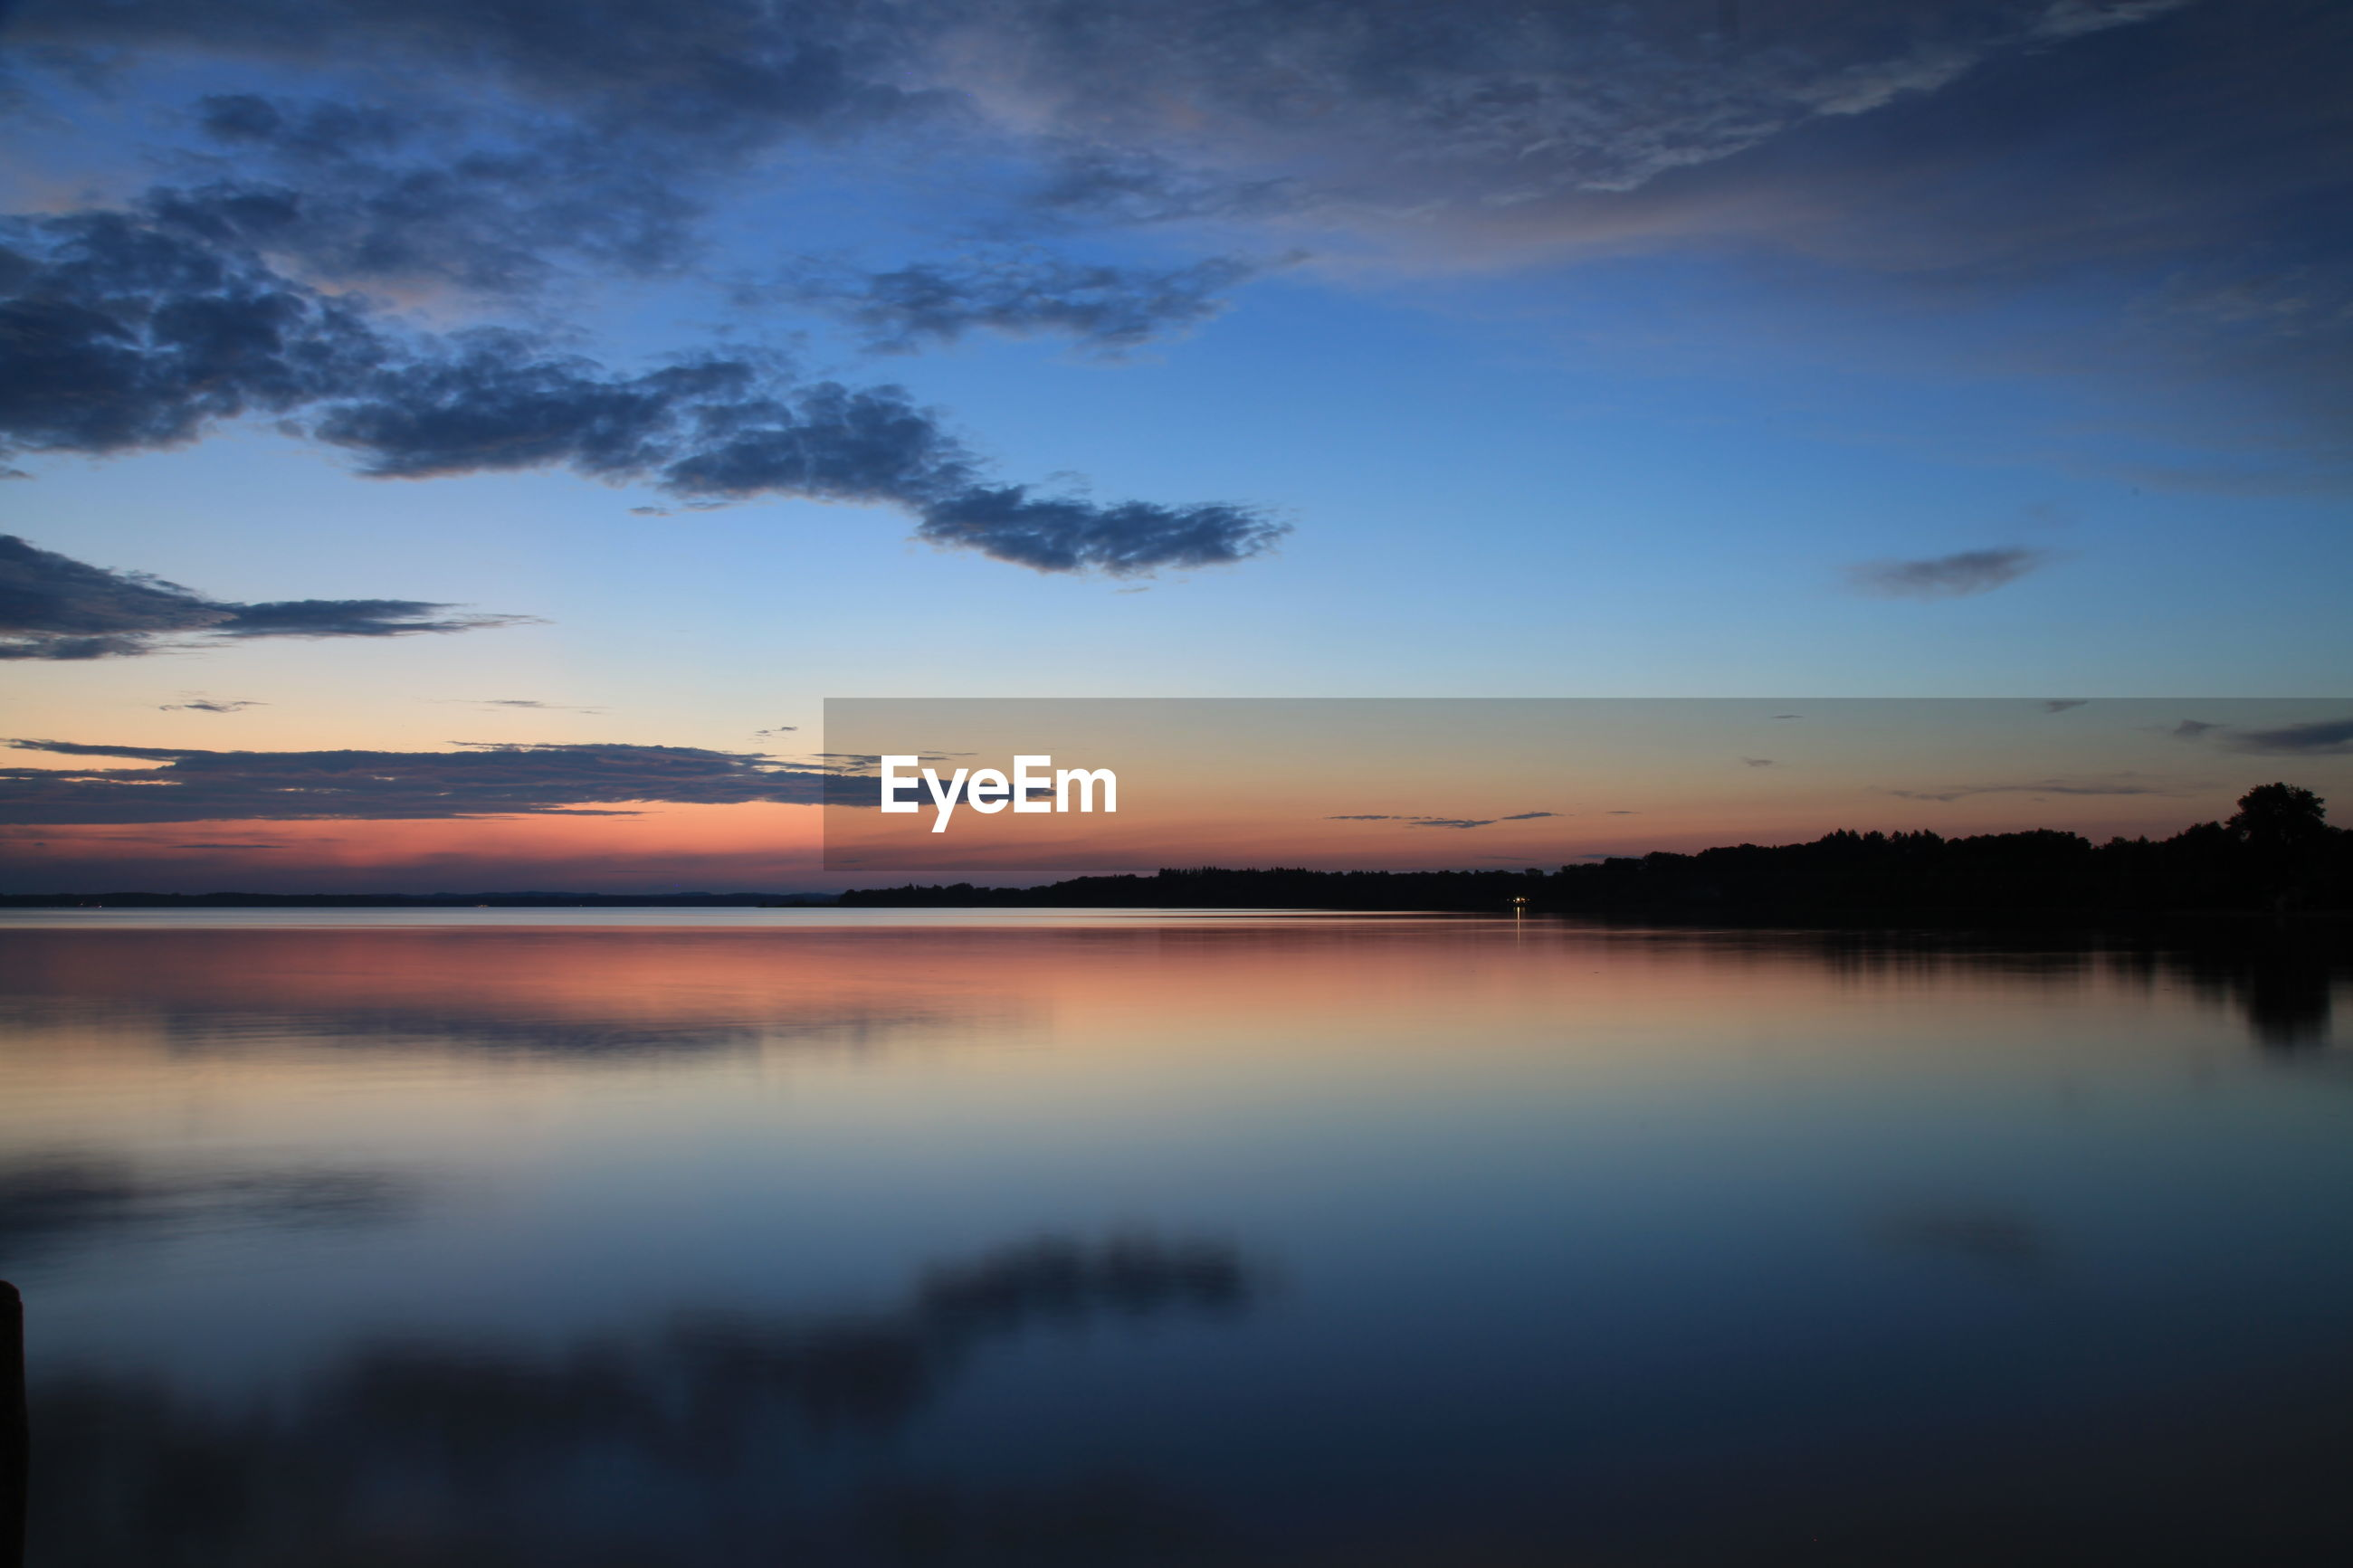 Scenic view of lake against blue sky at sunset